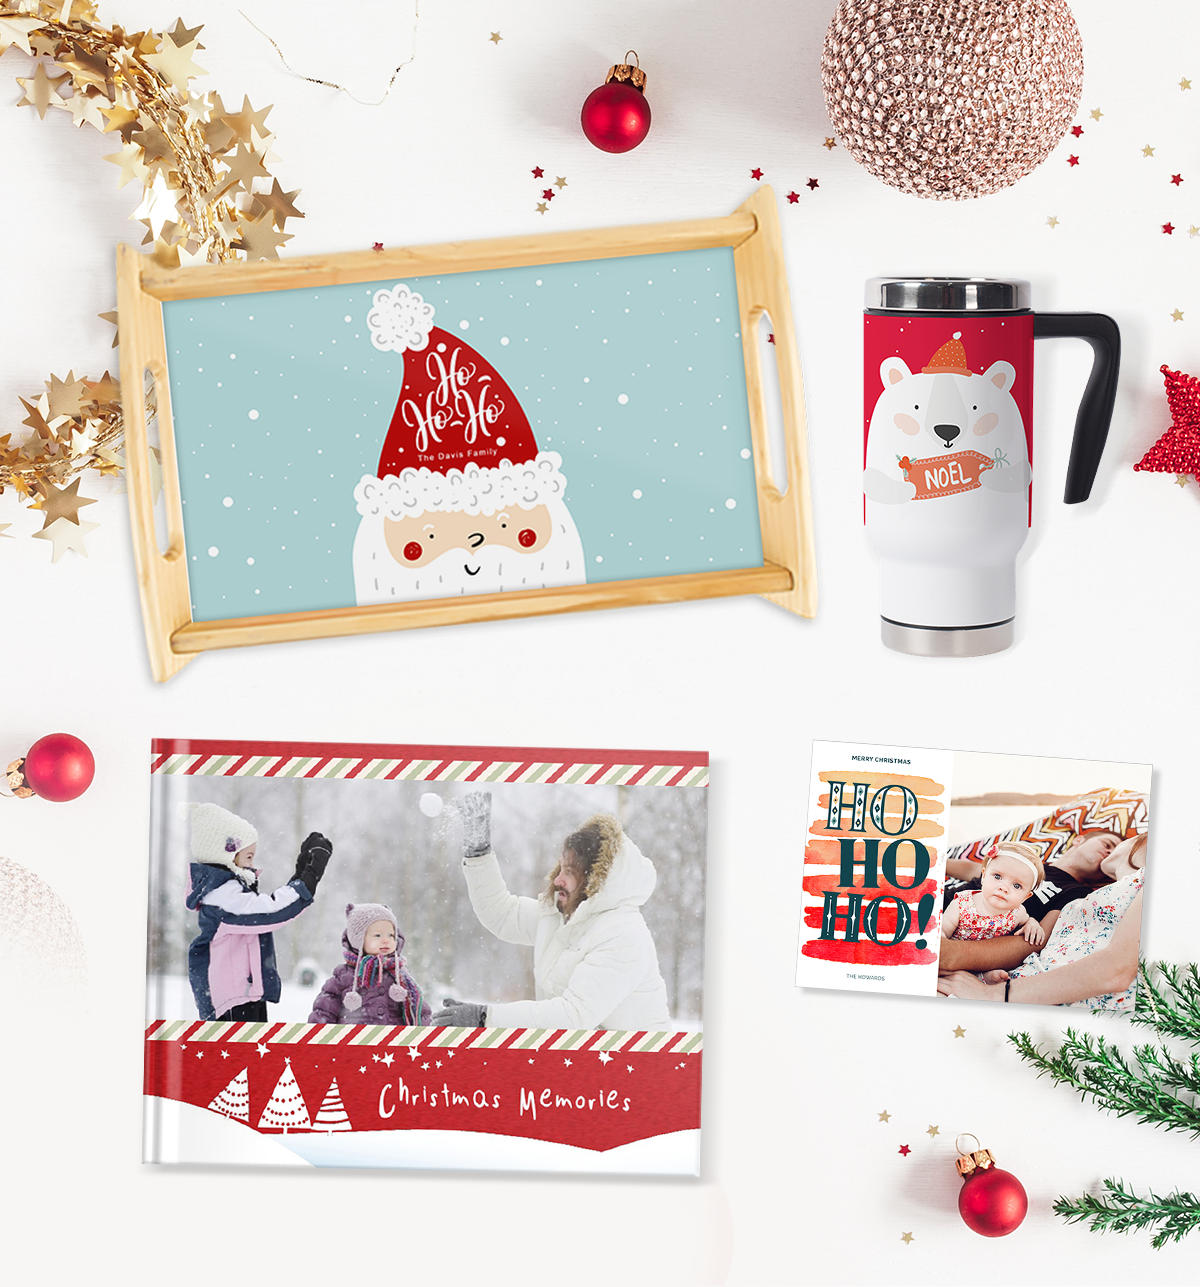 Photobook's Christmas products